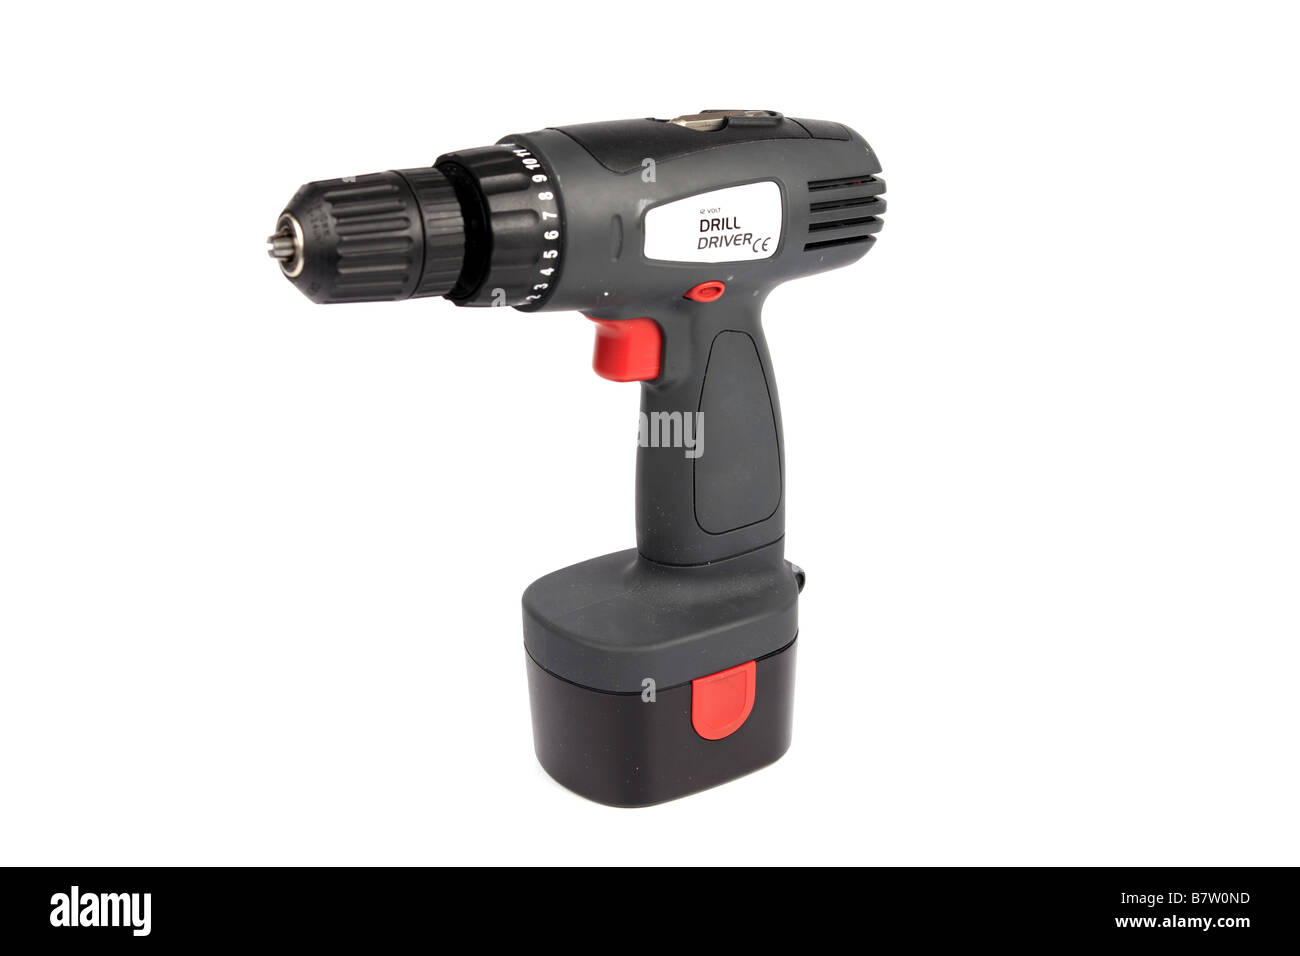 A chordless power drill against a white background - Stock Image